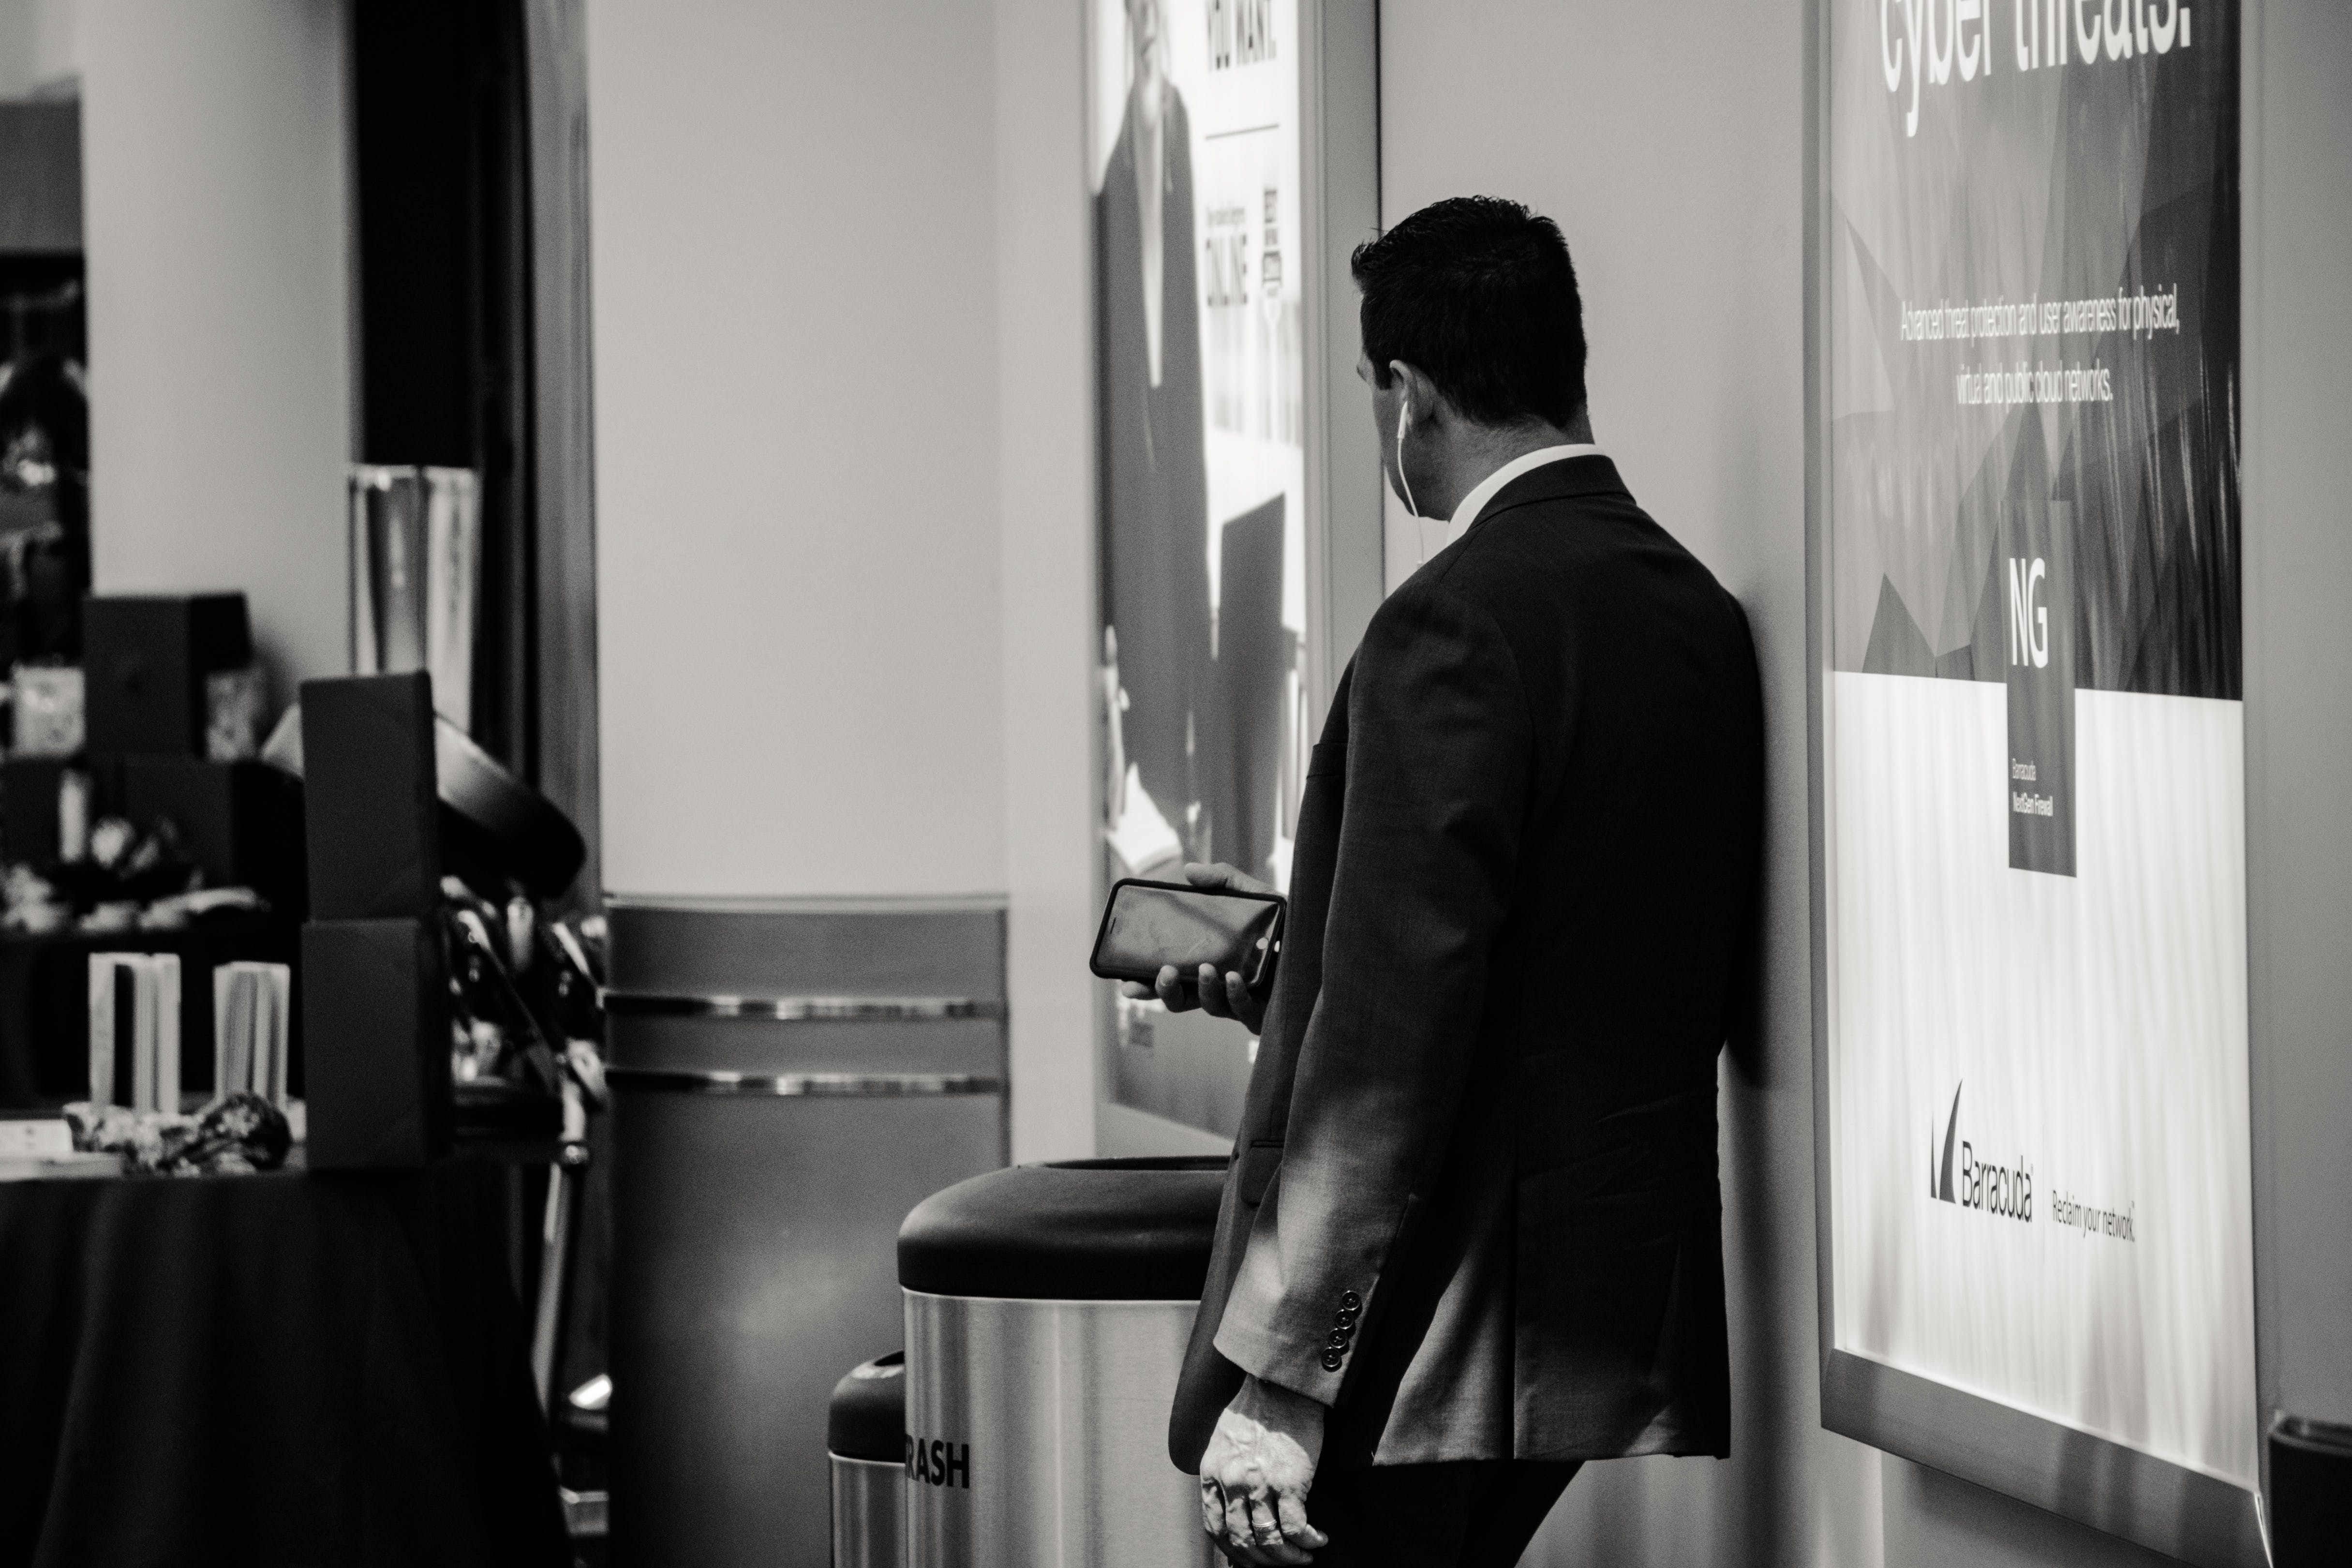 Man in Suit Jacket Near Poster